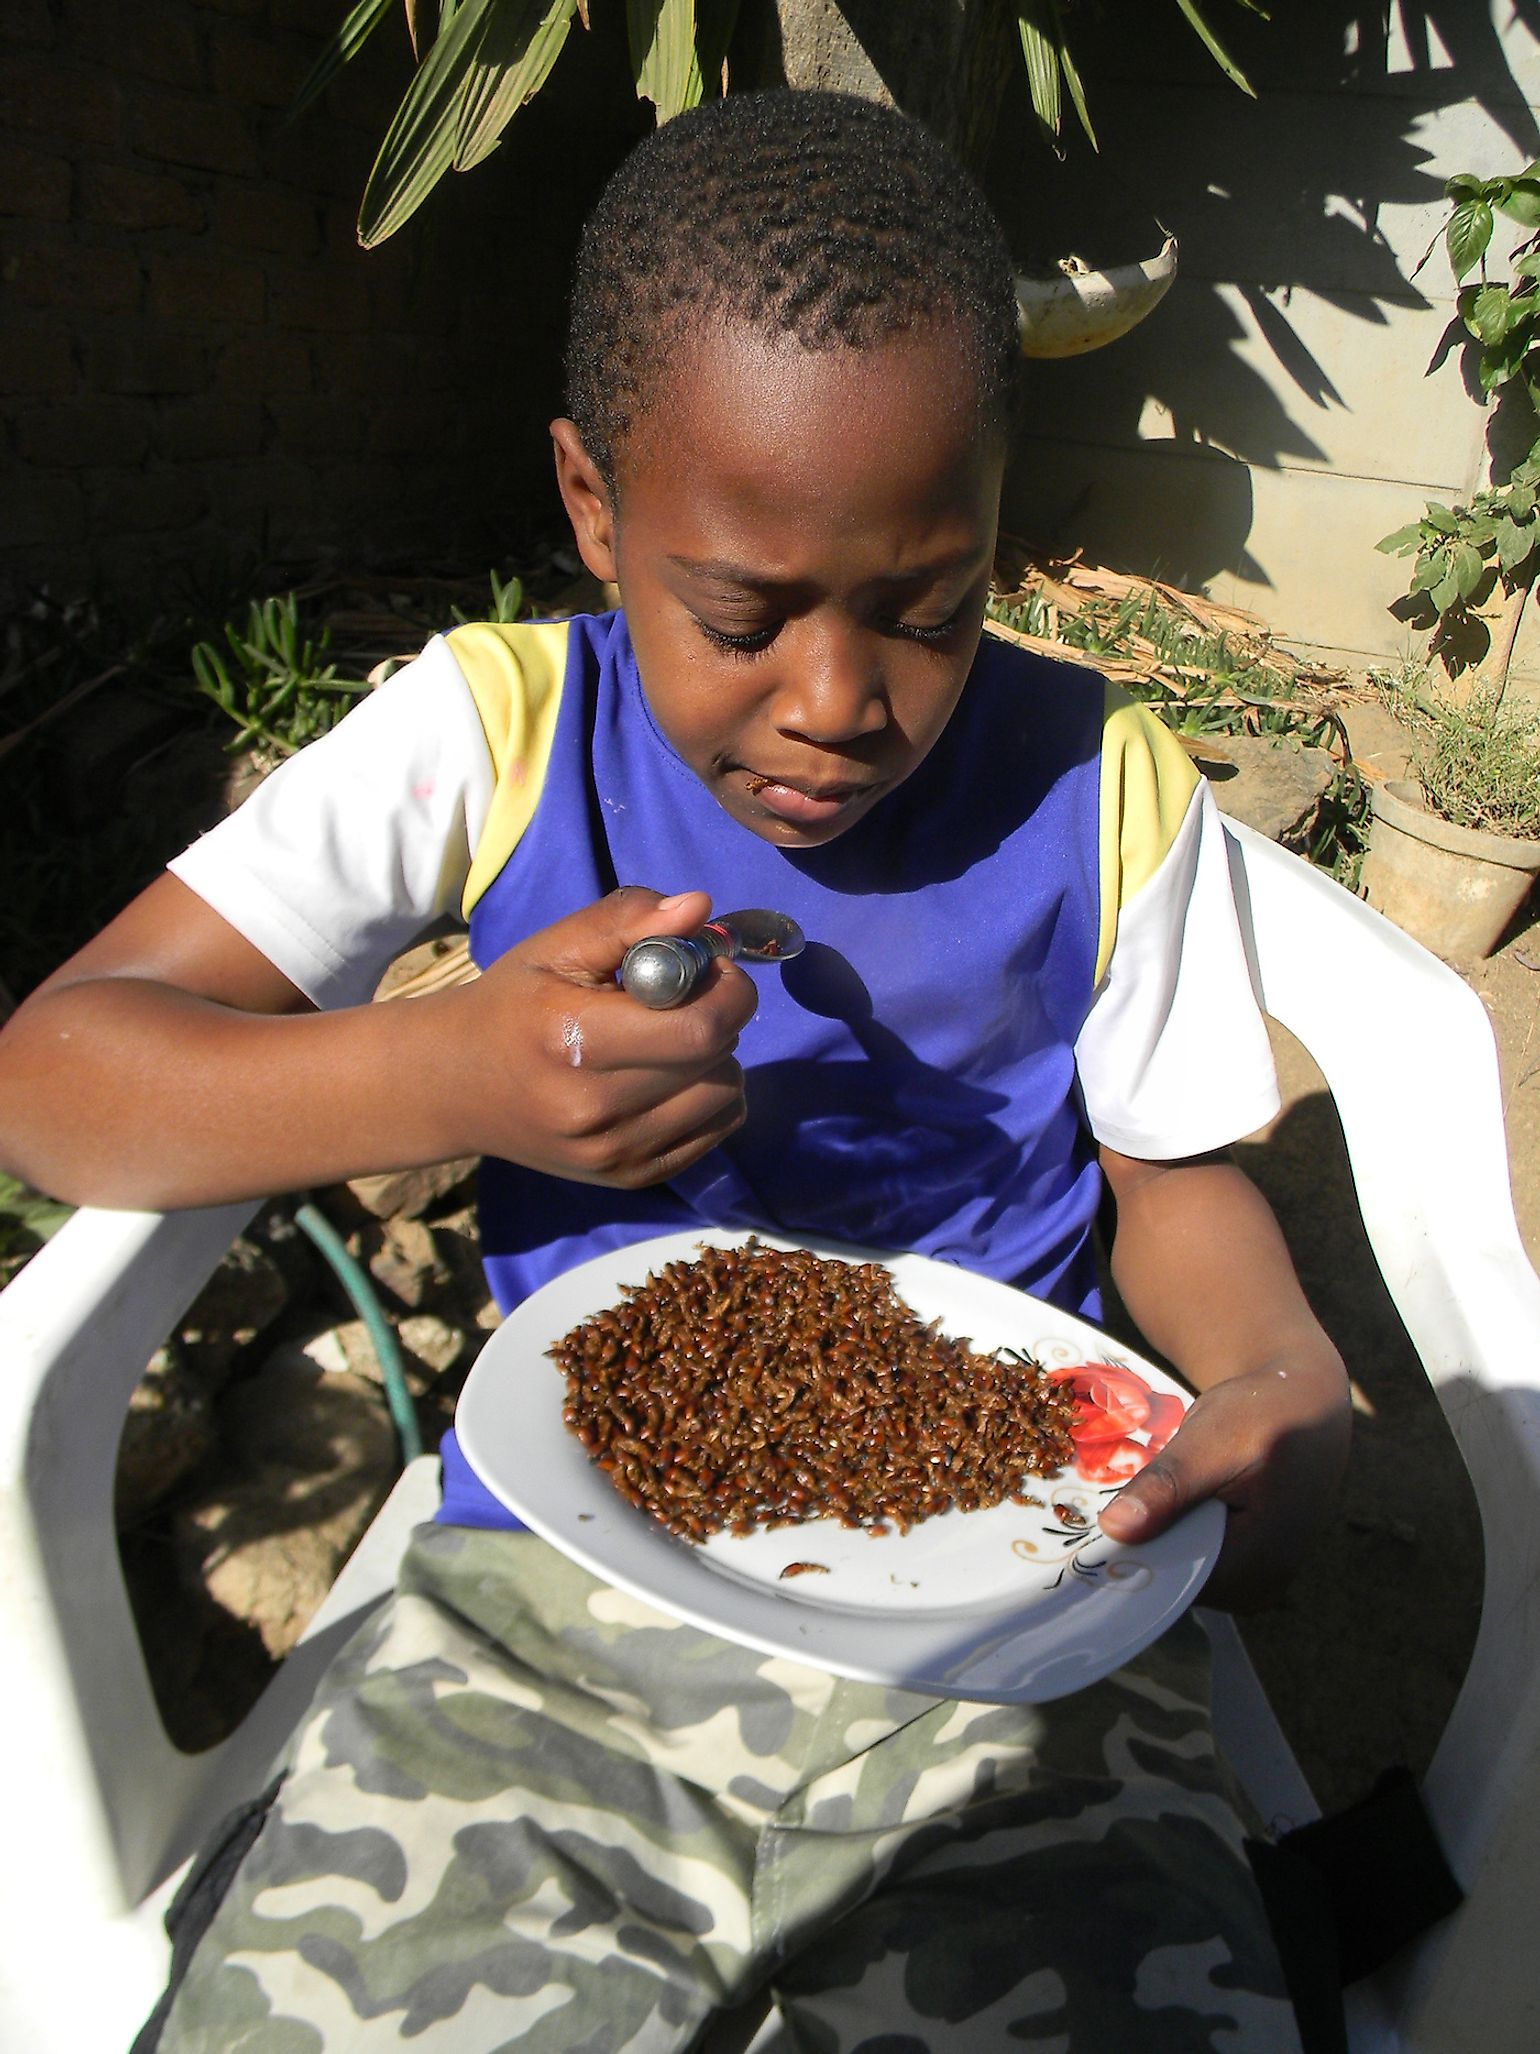 African boy eating dried termites which are a popular delicacy in many African countries. Image credit: CECIL BO DZWOWA/Shutterstock.com